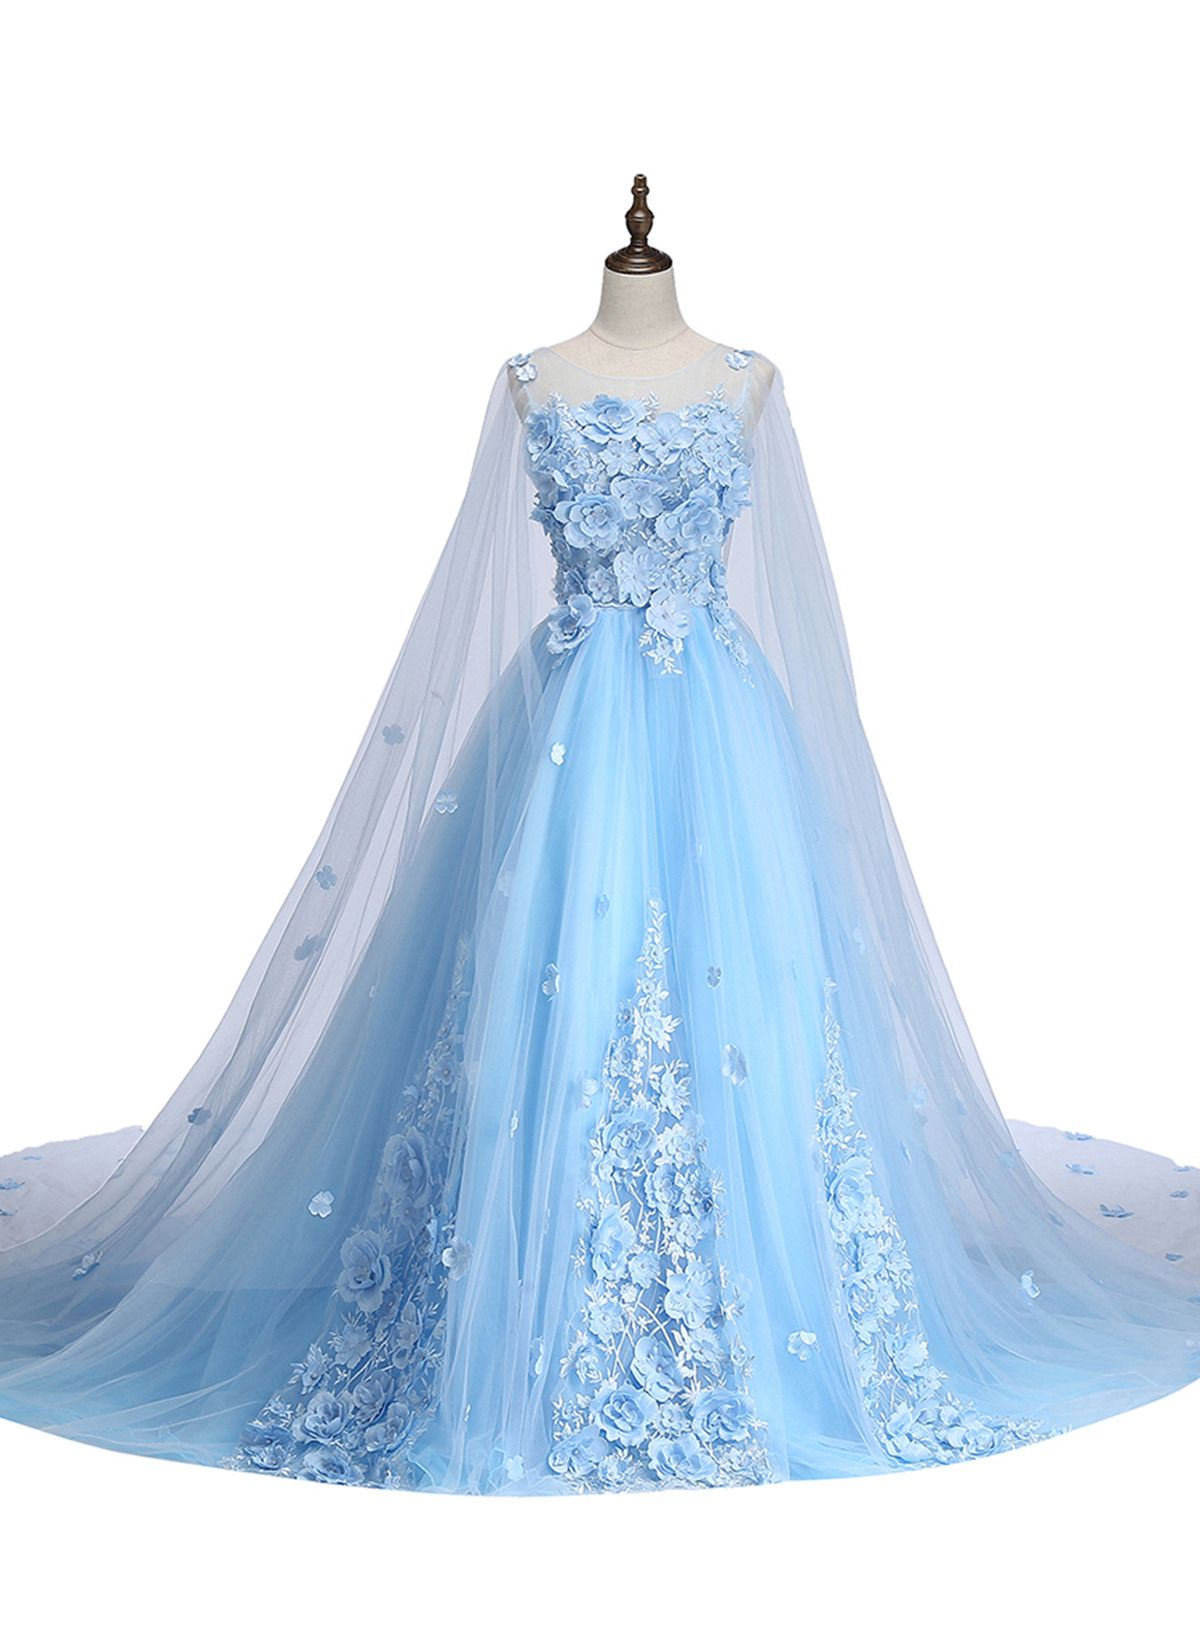 Baby blue tulle prom dress with d flowers prom gown wedding dress